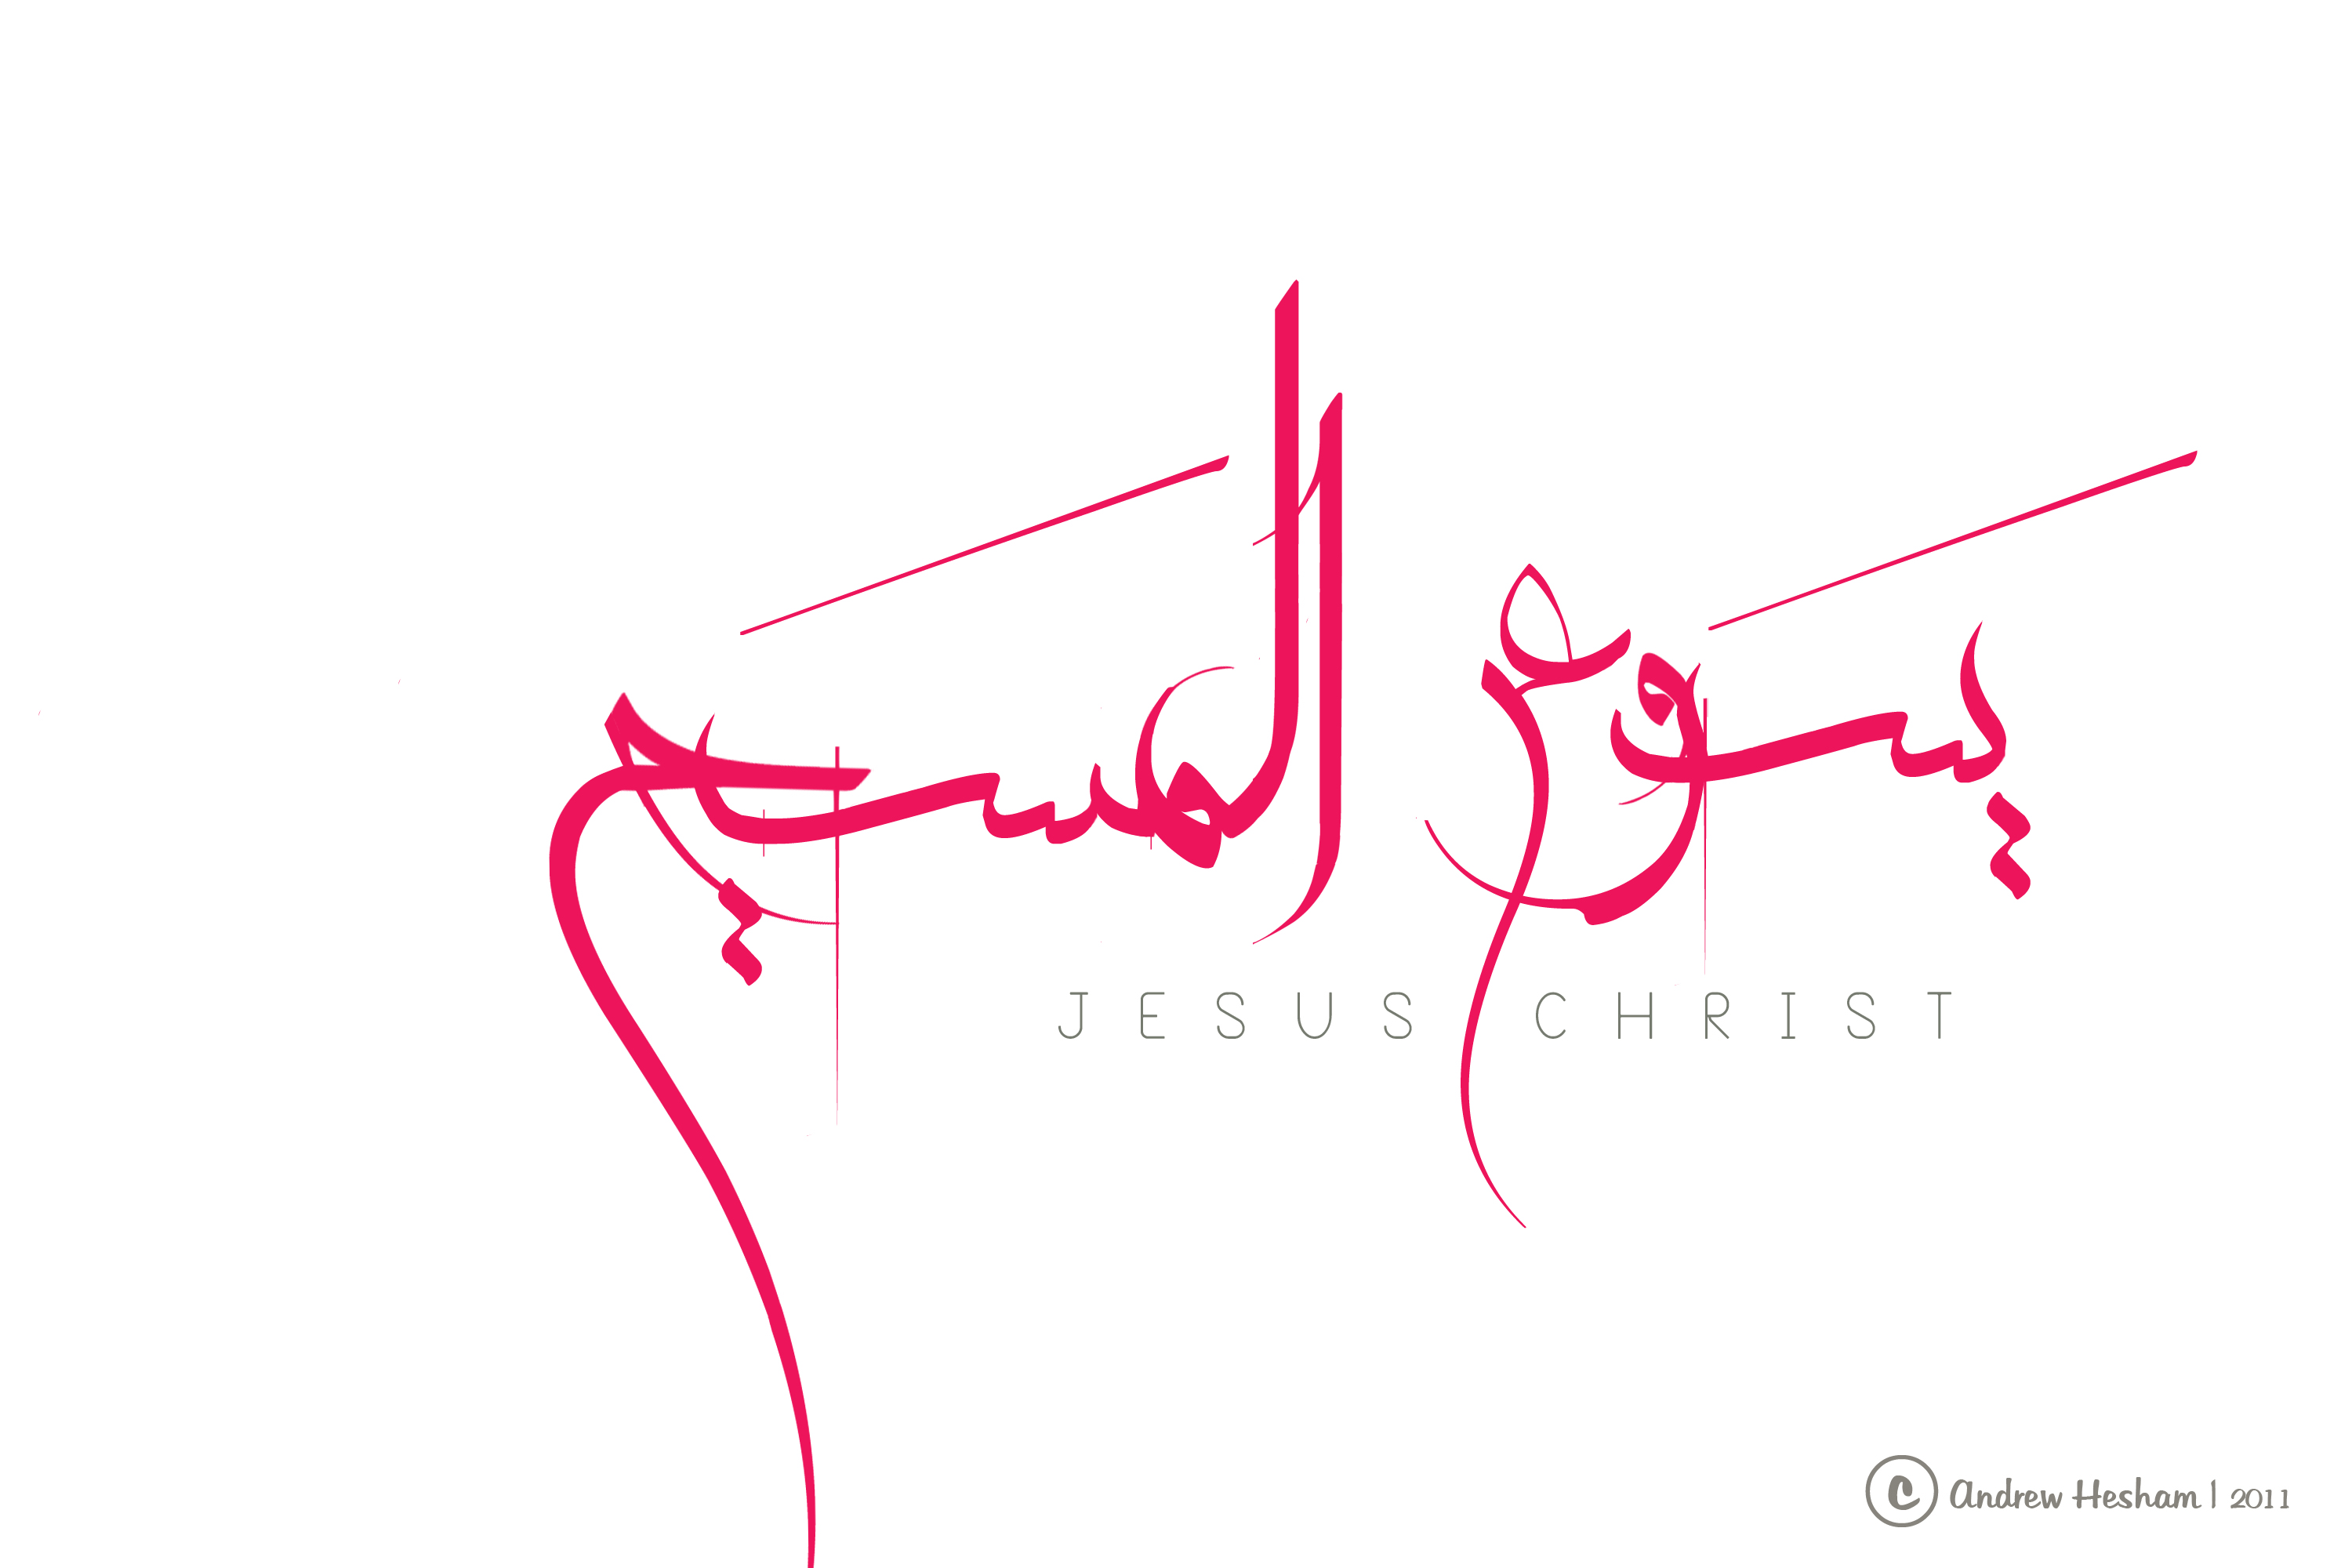 Jesus christ by andrewhesham on deviantart